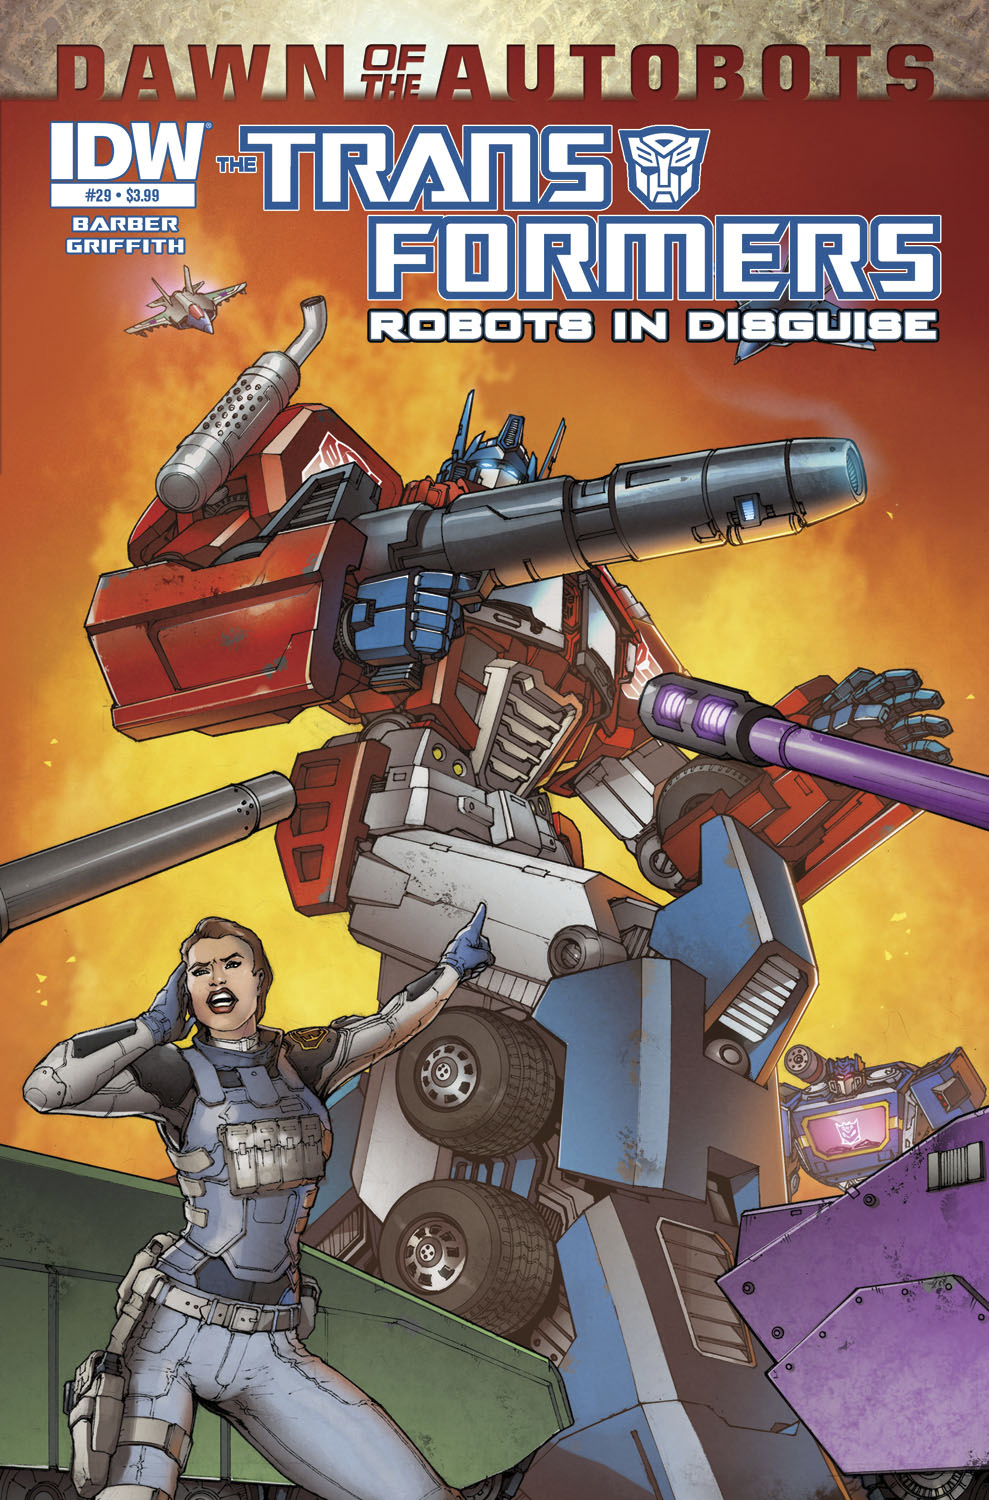 TRANSFORMERS ROBOTS IN DISGUISE #29 DAWN O/T AUTOBOTS